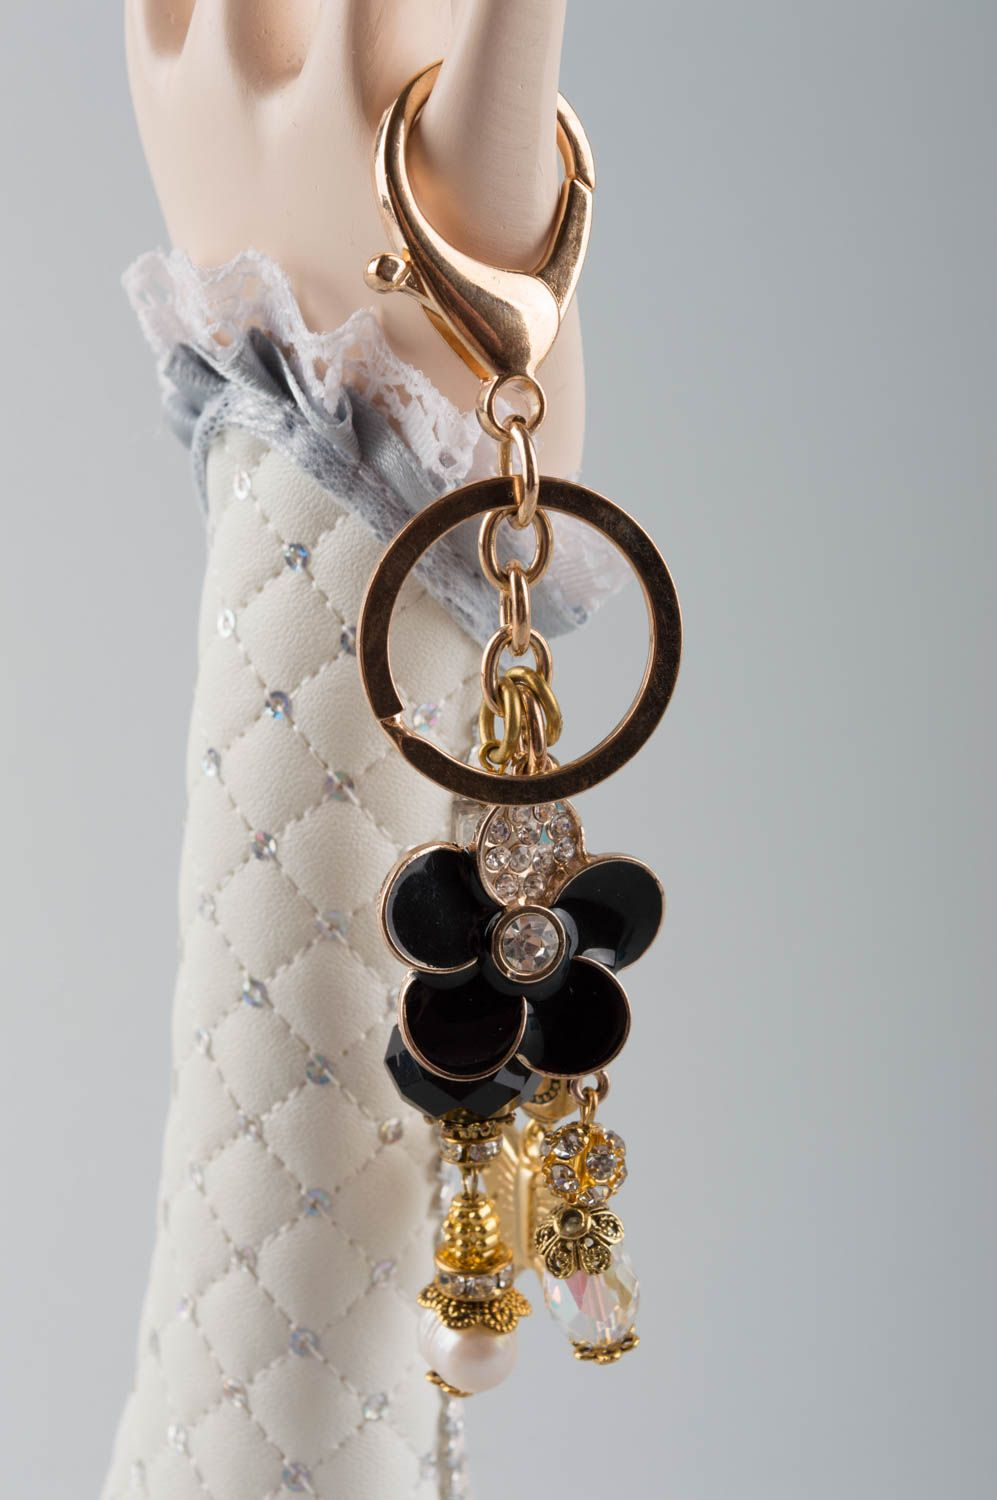 keychains Handmade keychain with natural stone brass keychain stone accessory for women - MADEheart.com